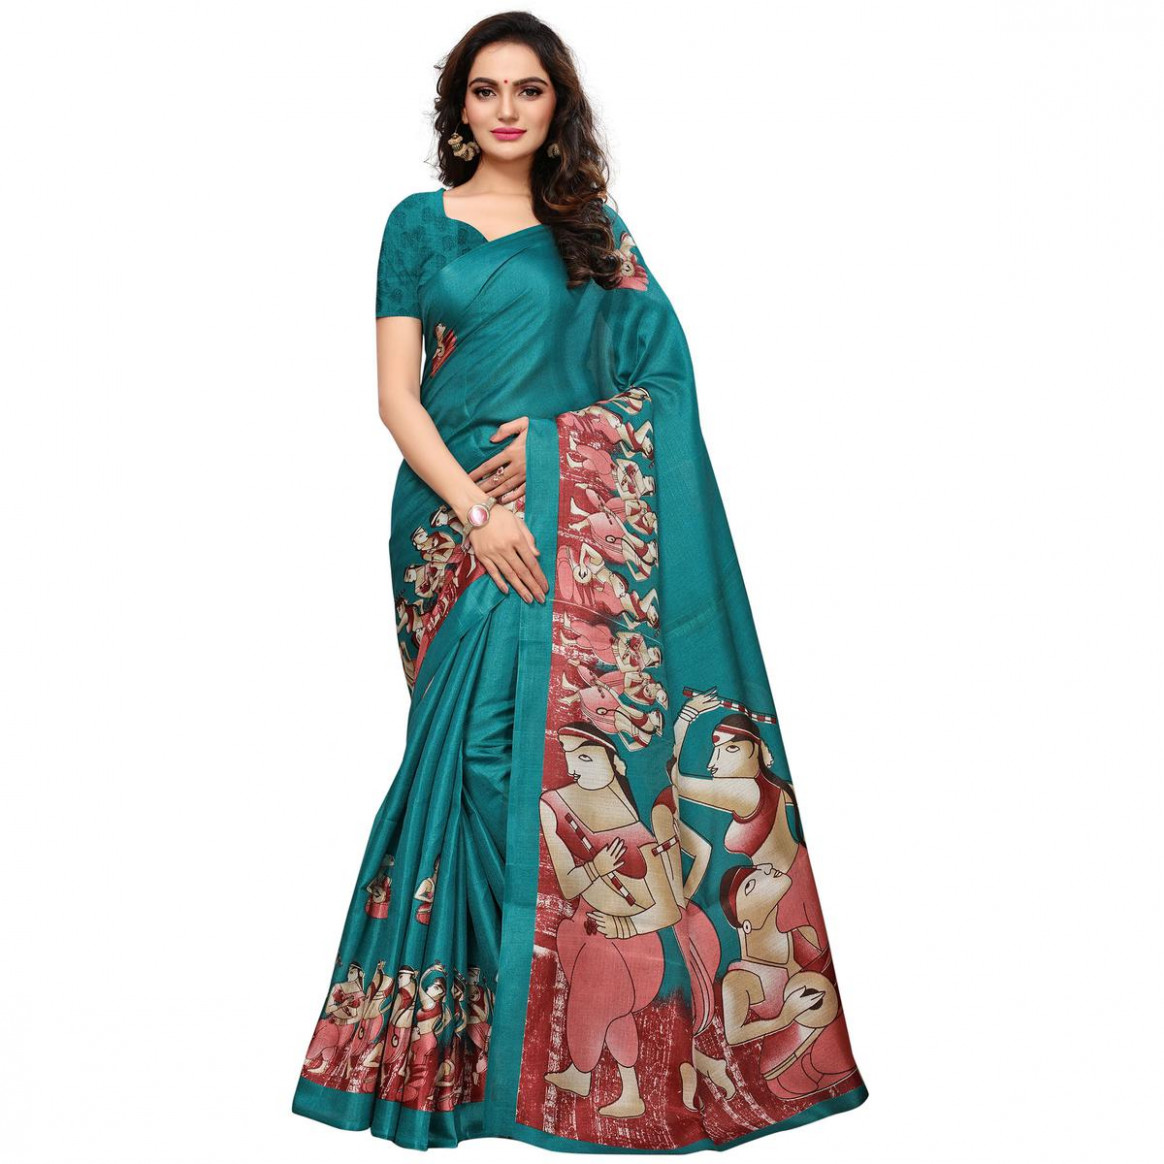 Buy Blissful Turquoise Blue Colored Casual Printed Khadi